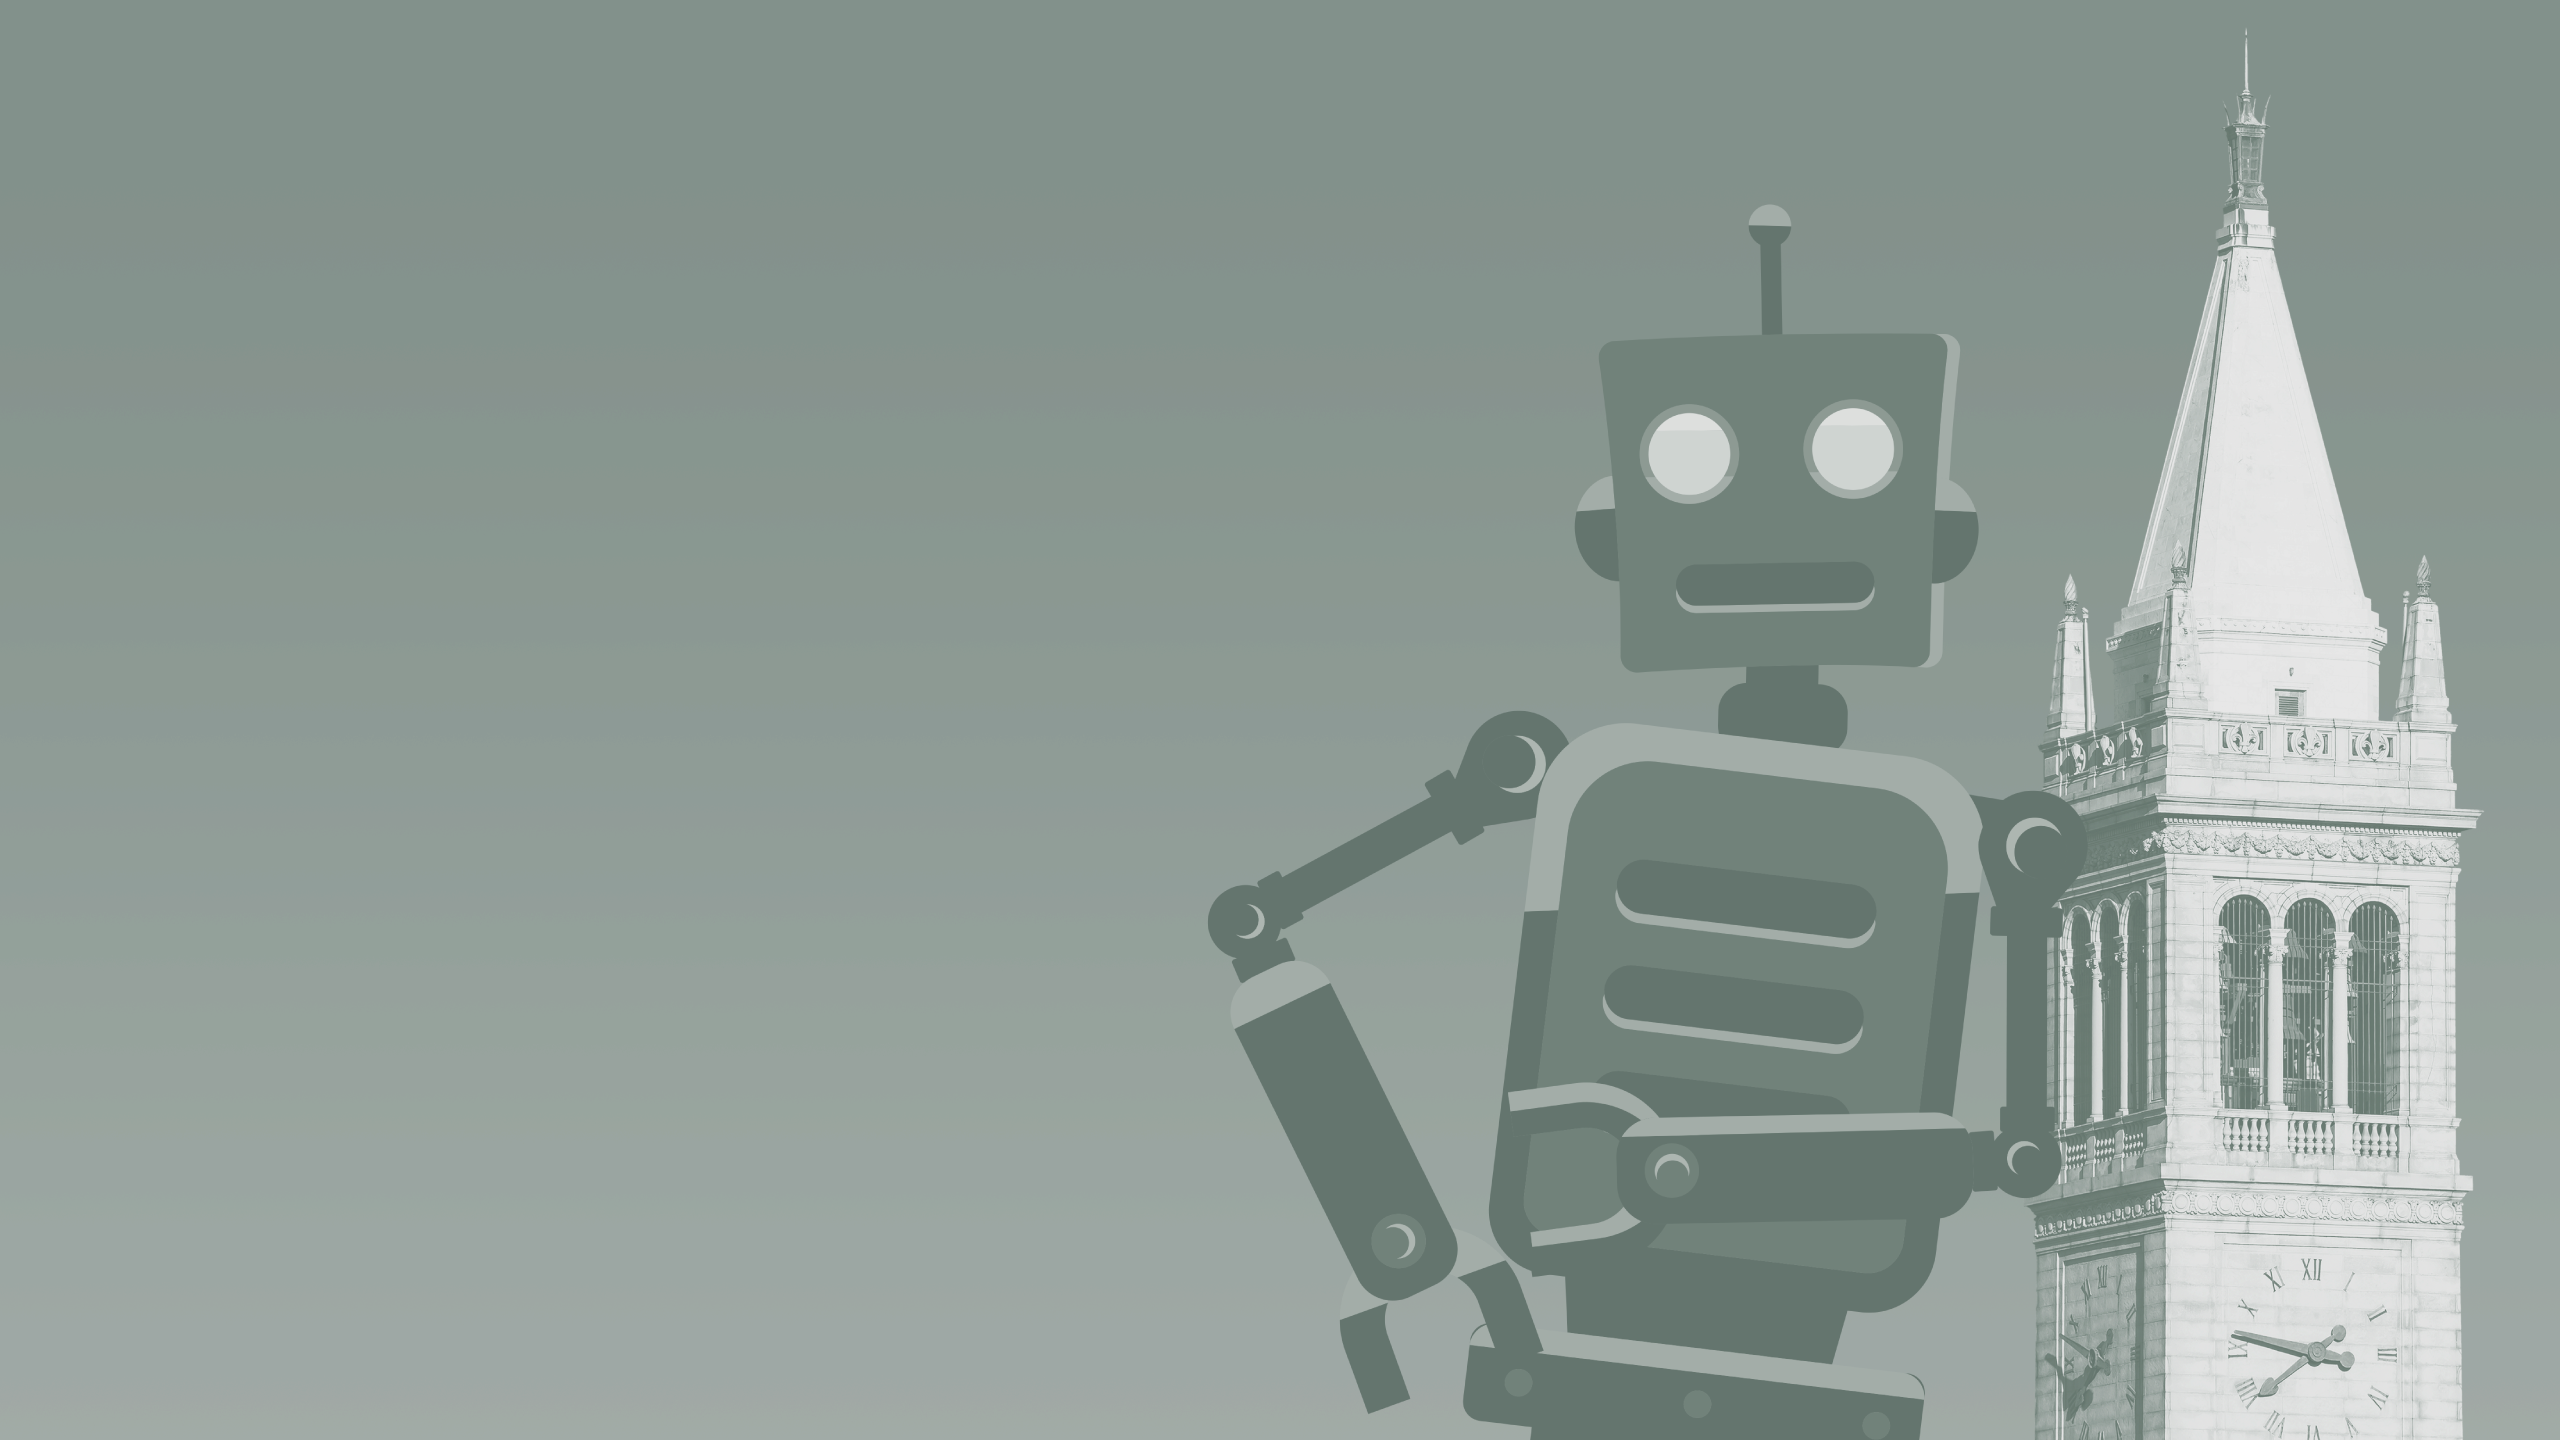 We want to hear about your robotics company